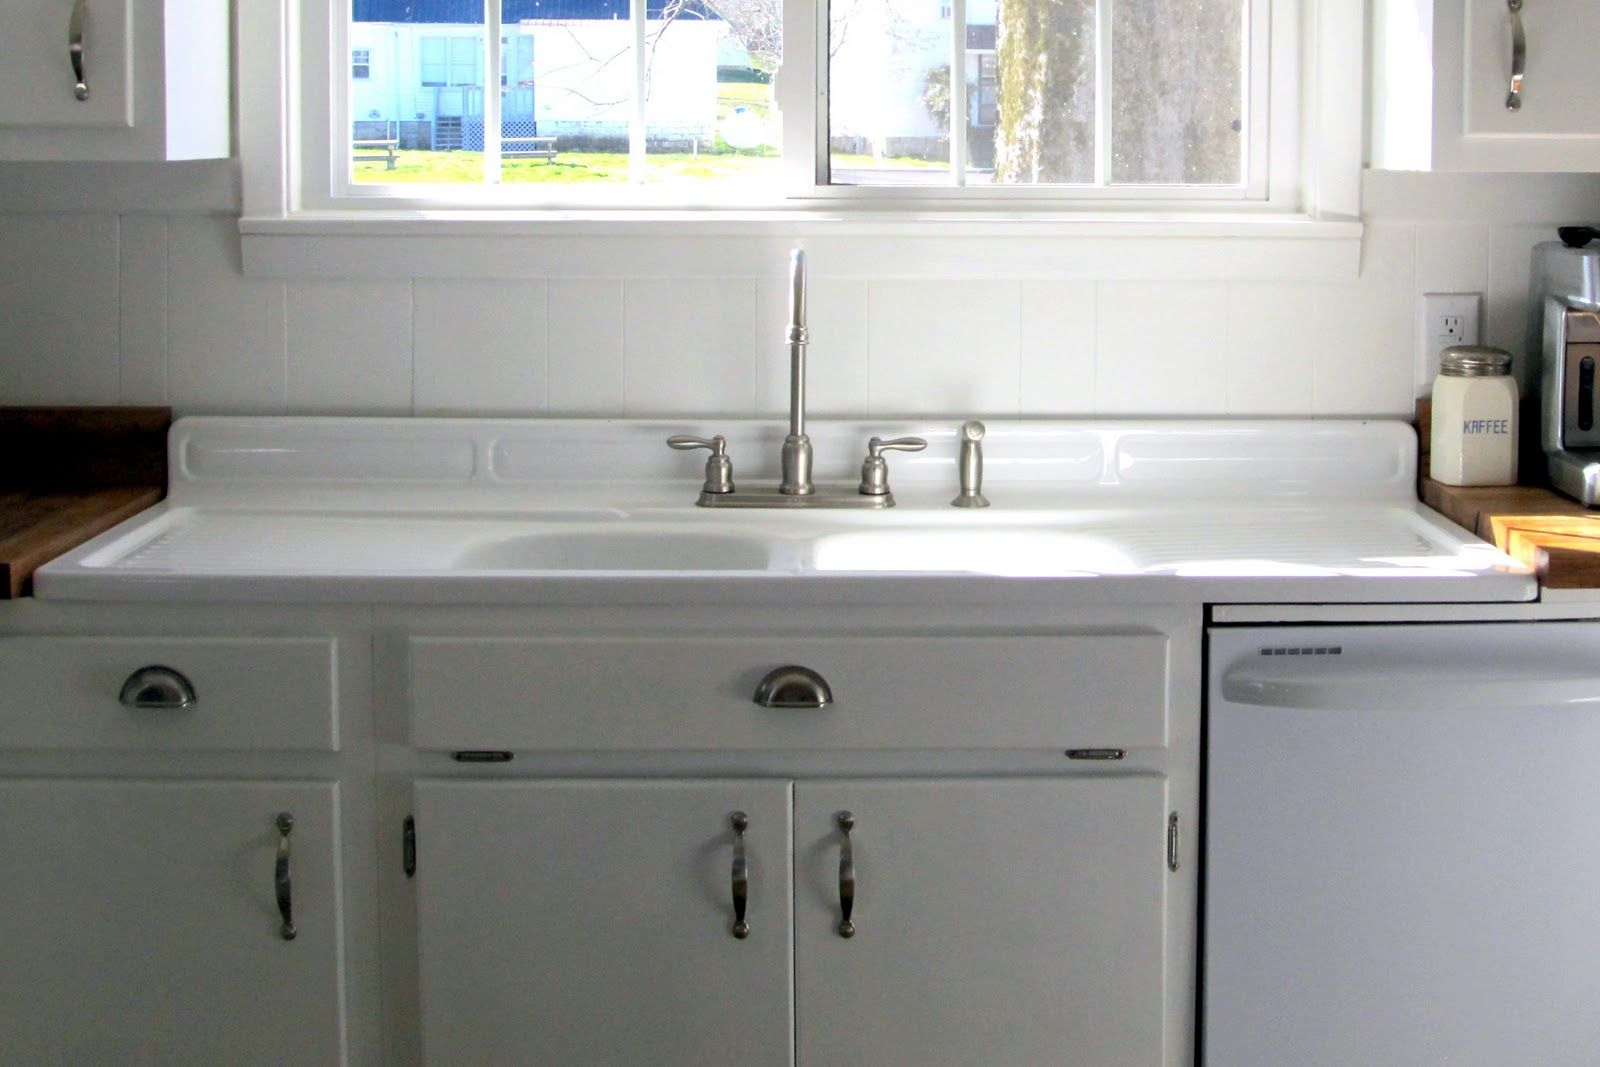 Old Fashioned Sinks Kitchen With Side Boards